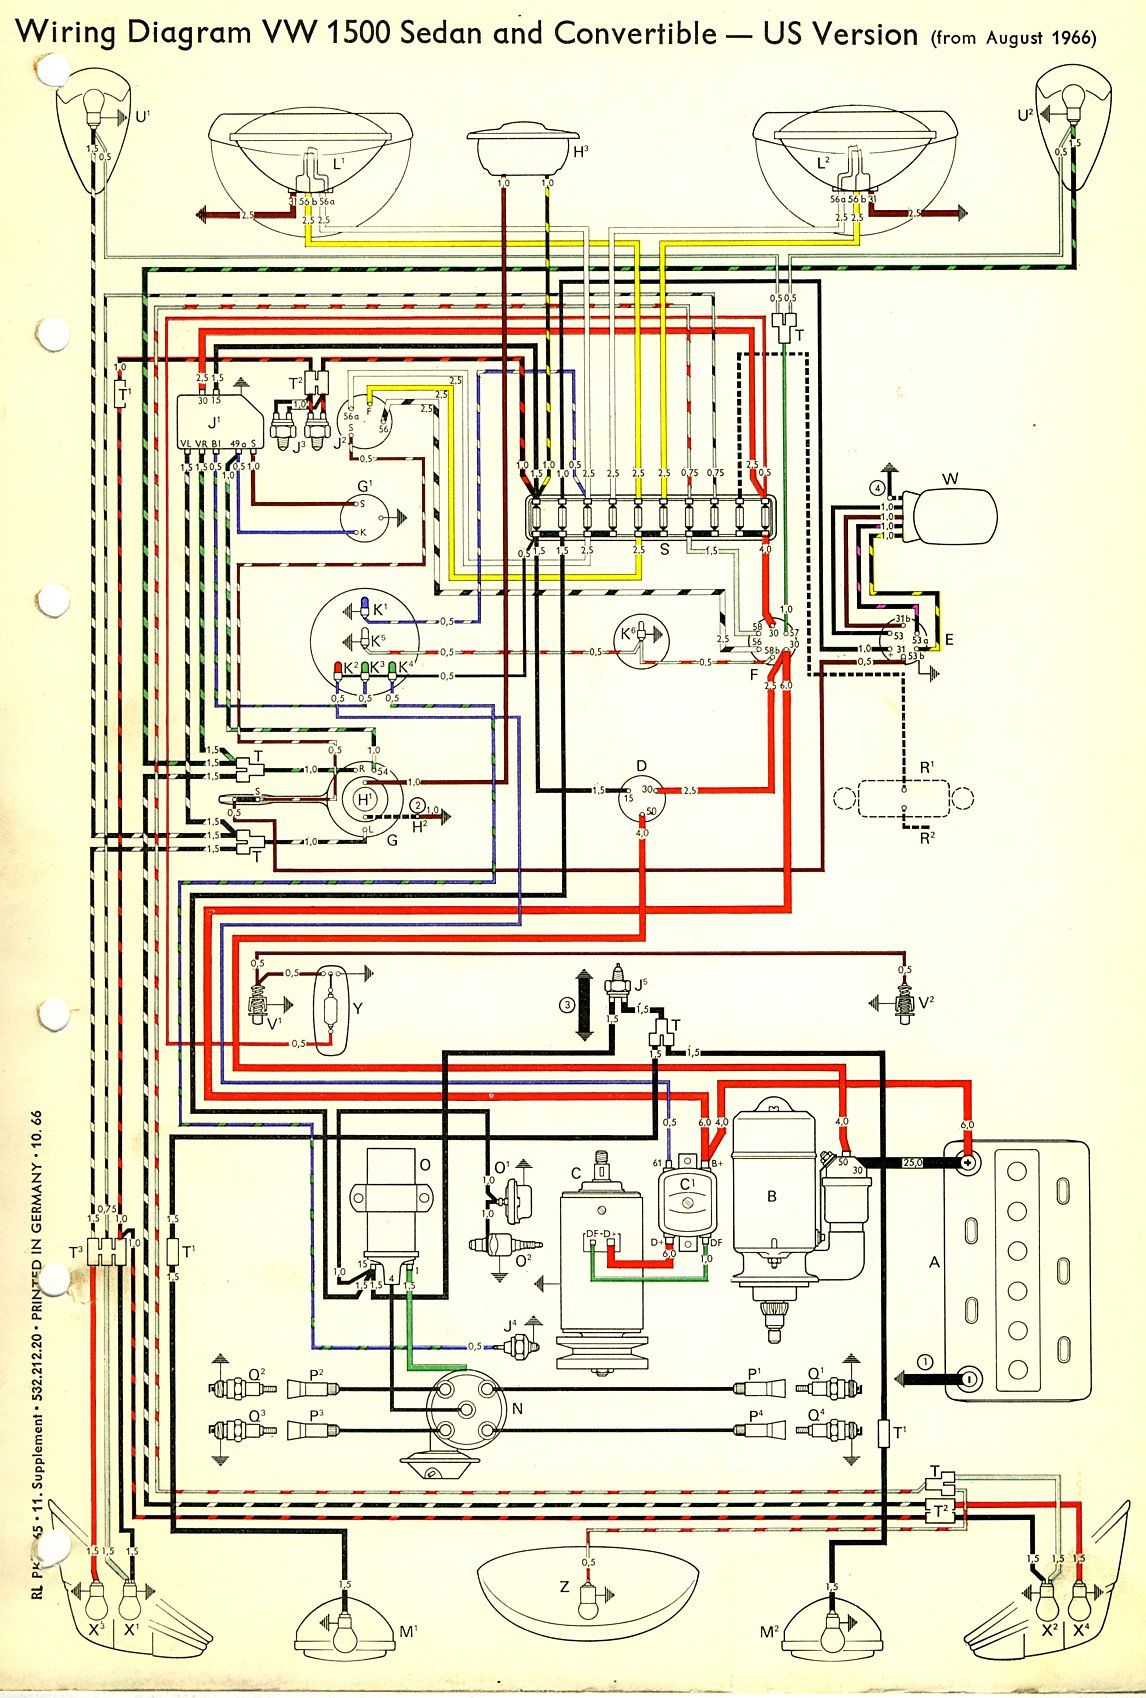 72 bug wiring diagram wiring diagram Wiring Diagram for 1979 VW Super Beetle 1963 vw bug wiring diagram 11 10 spikeballclubkoeln de \\u202272 bug wiring diagram wiring diagram